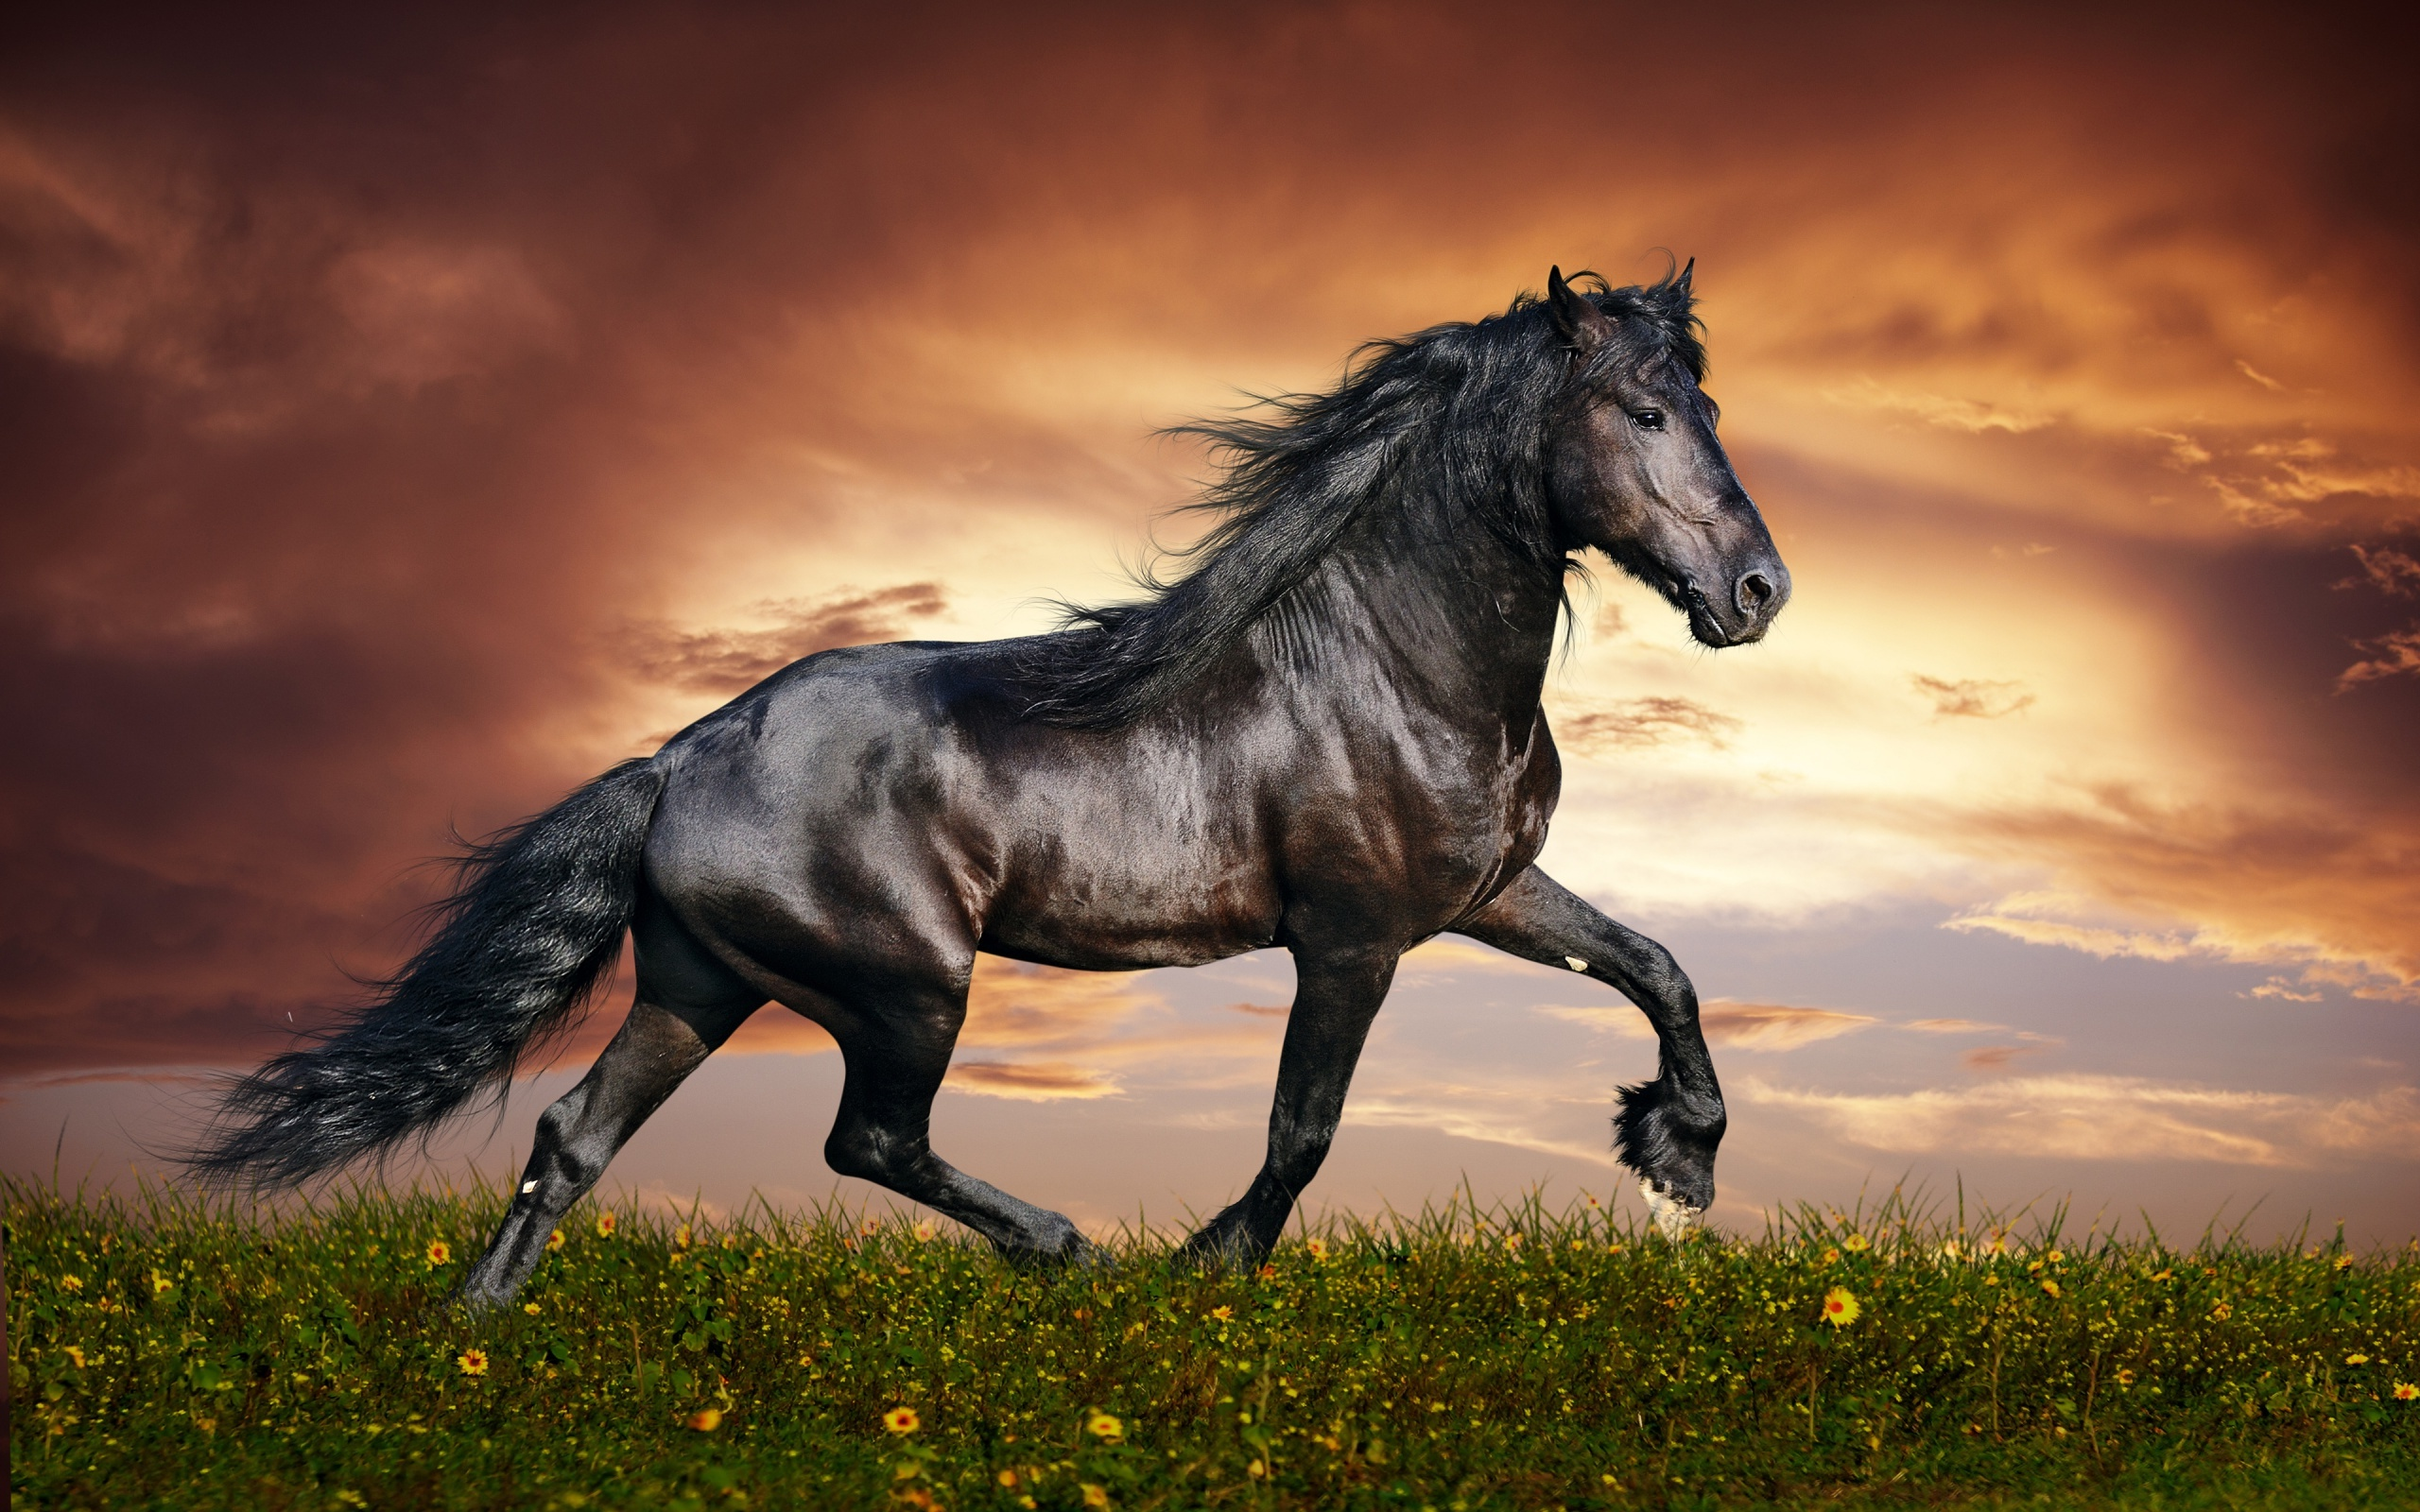 Sfondi desktop hd cavallo nero sfondi hd gratis for Sfondi desktop hd gratis